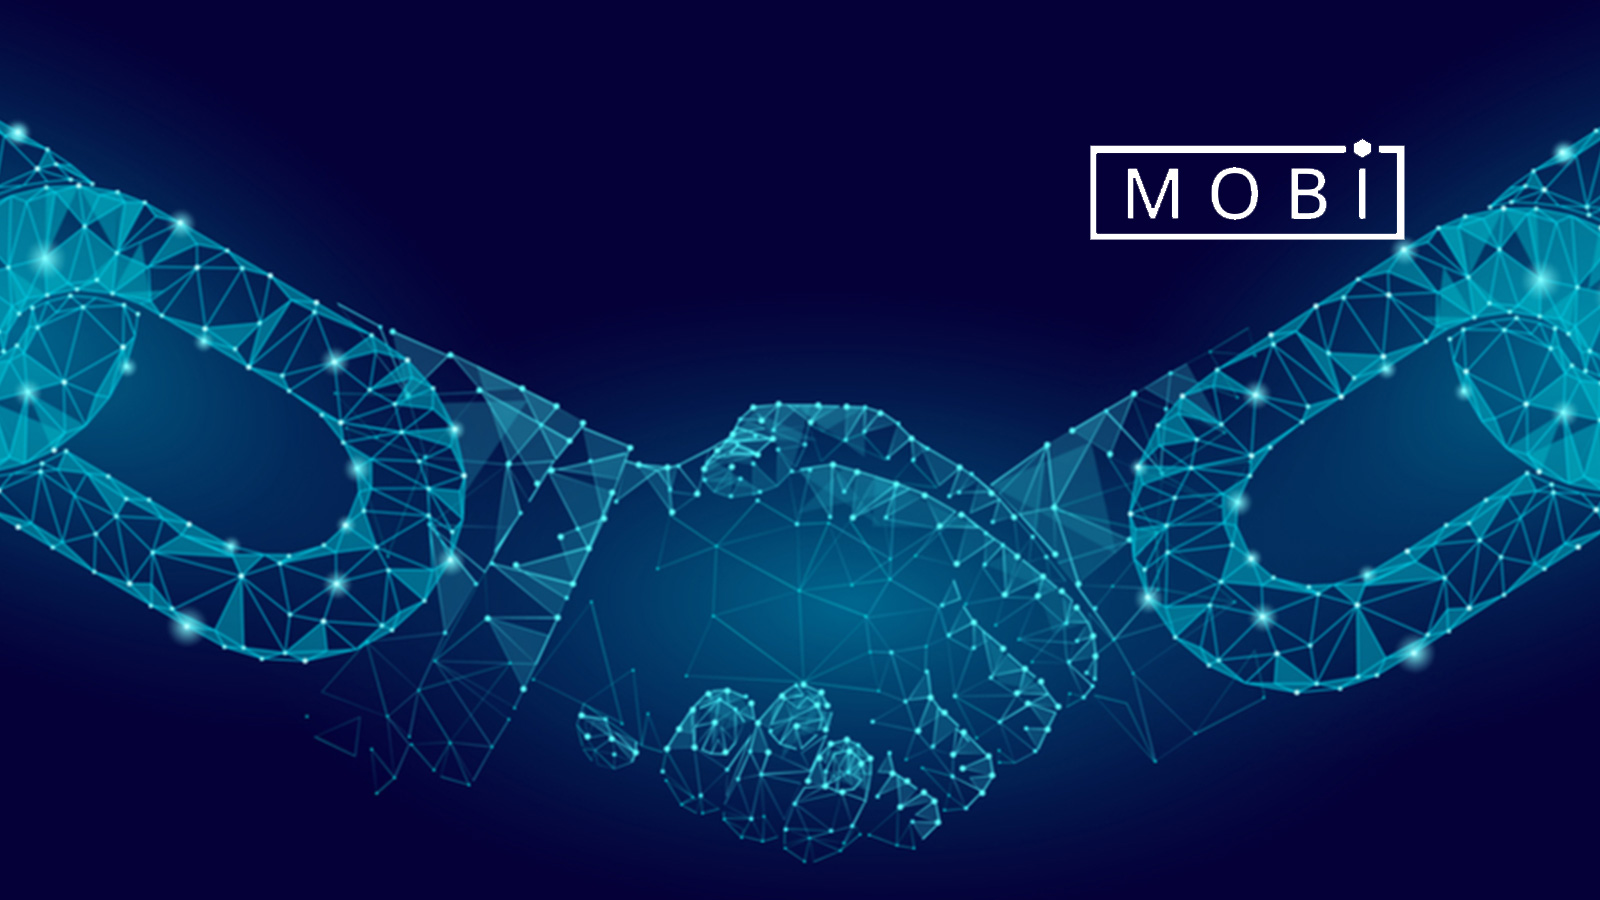 MOBI Announces the First VID Standard on Blockchain in